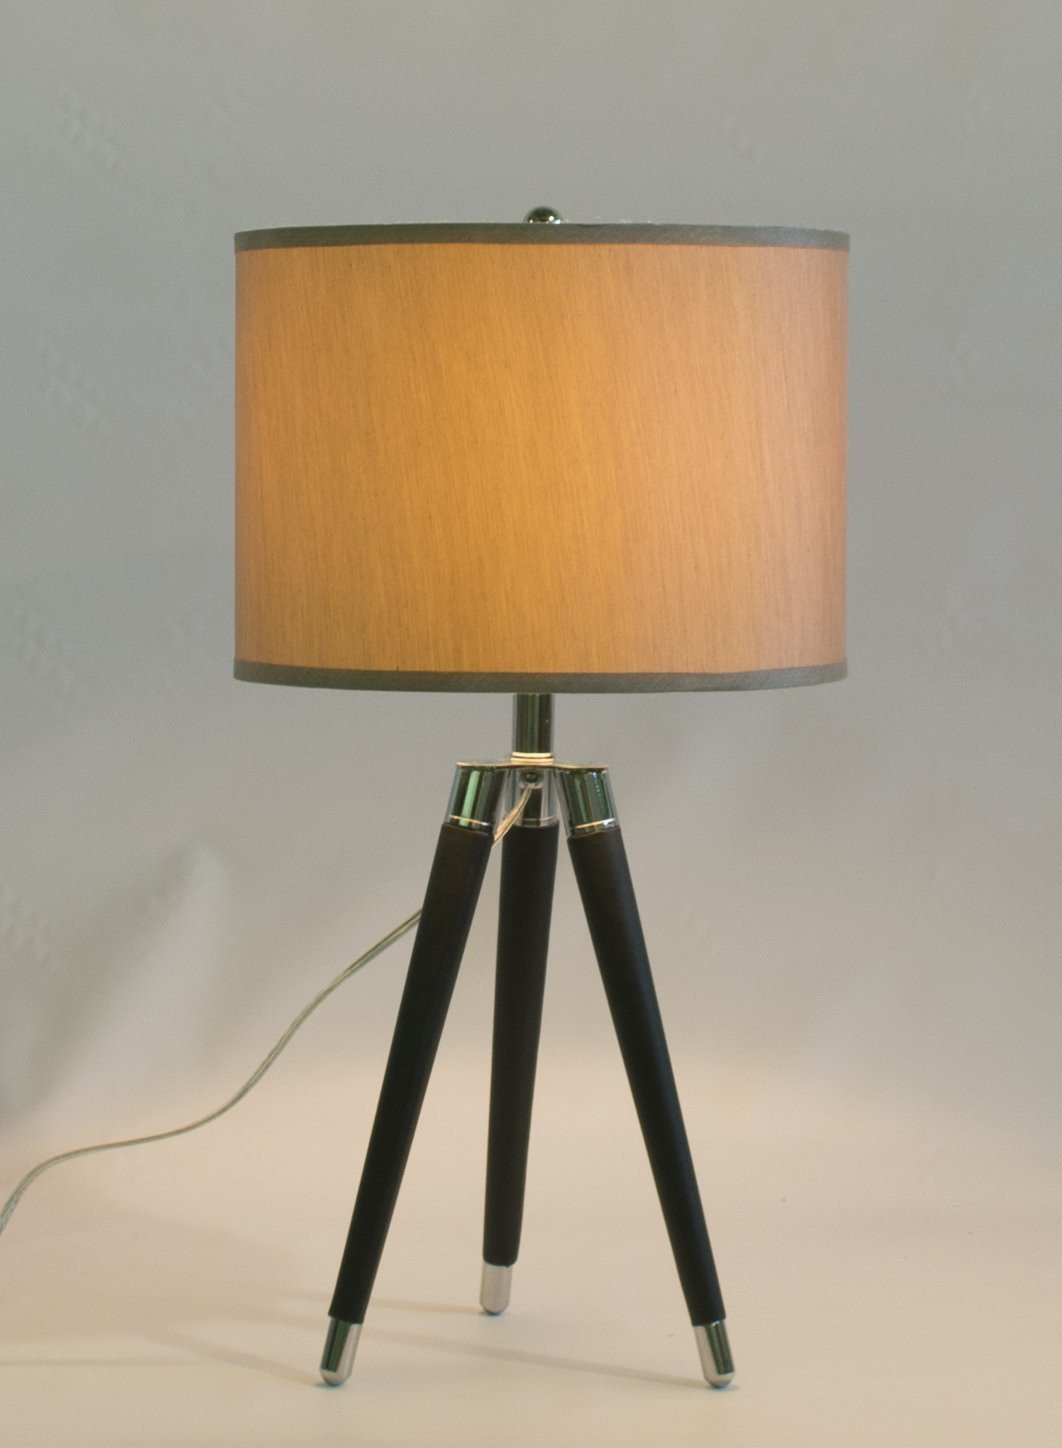 Black Mid Century Modern Tripod Leather U0026 Chrome Table Lamp With 14 In U2013  Urbanest